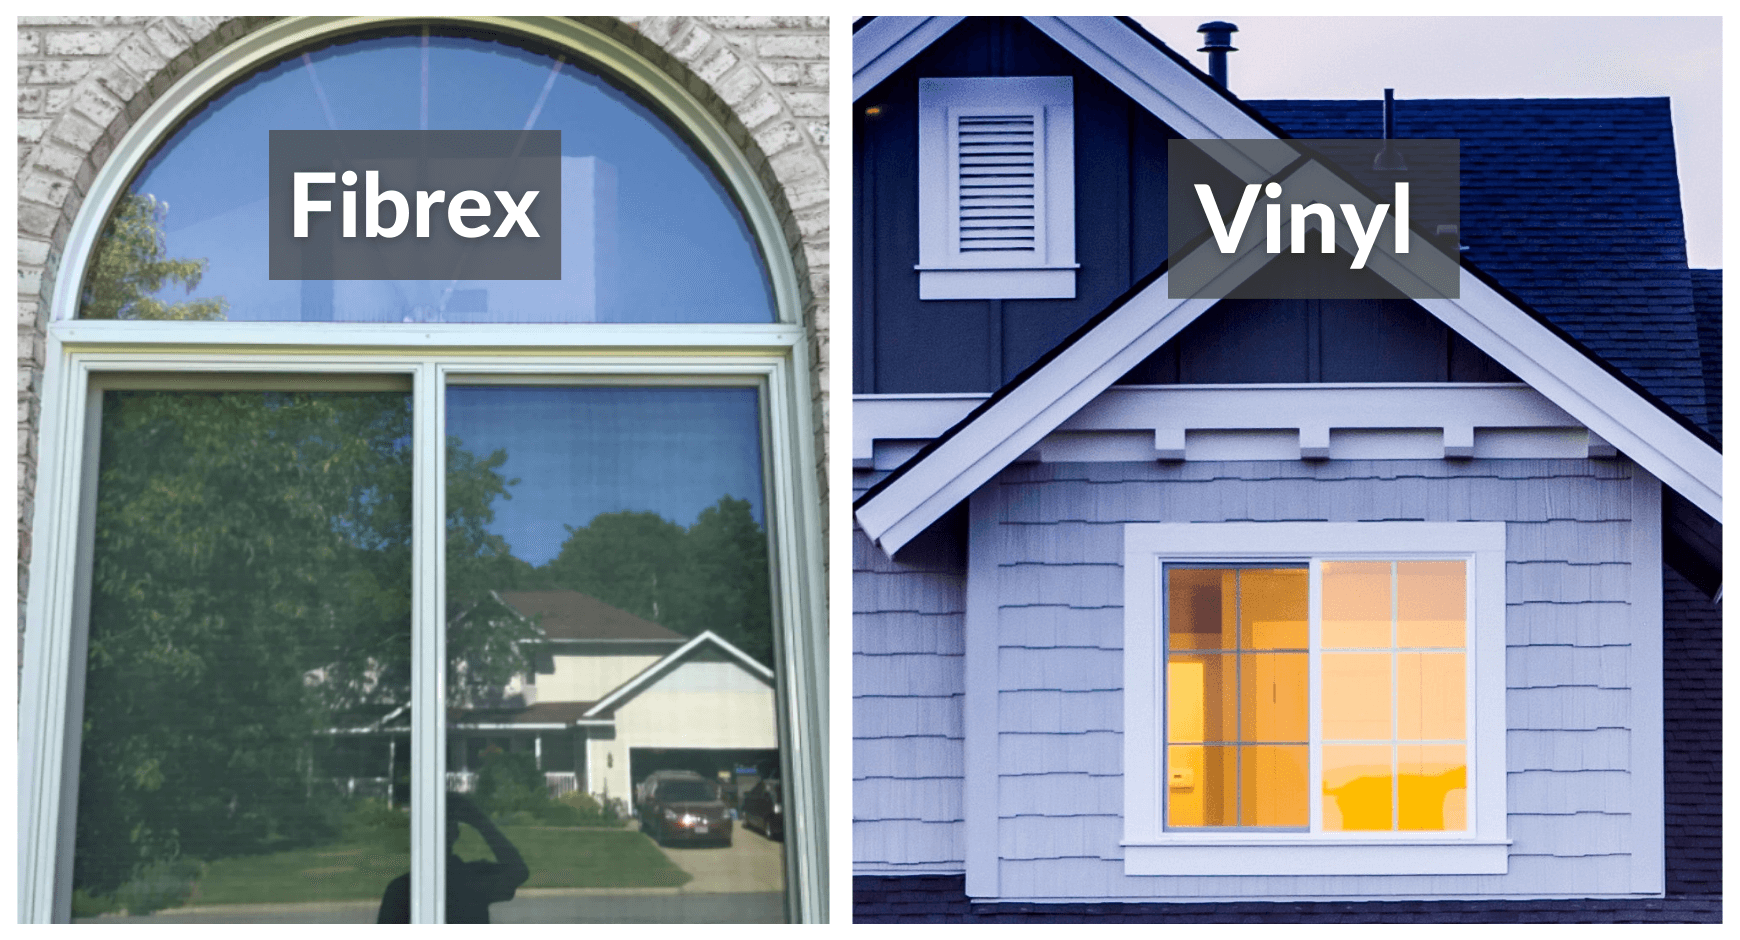 Side by side comparison of Fibrex and Vinyl